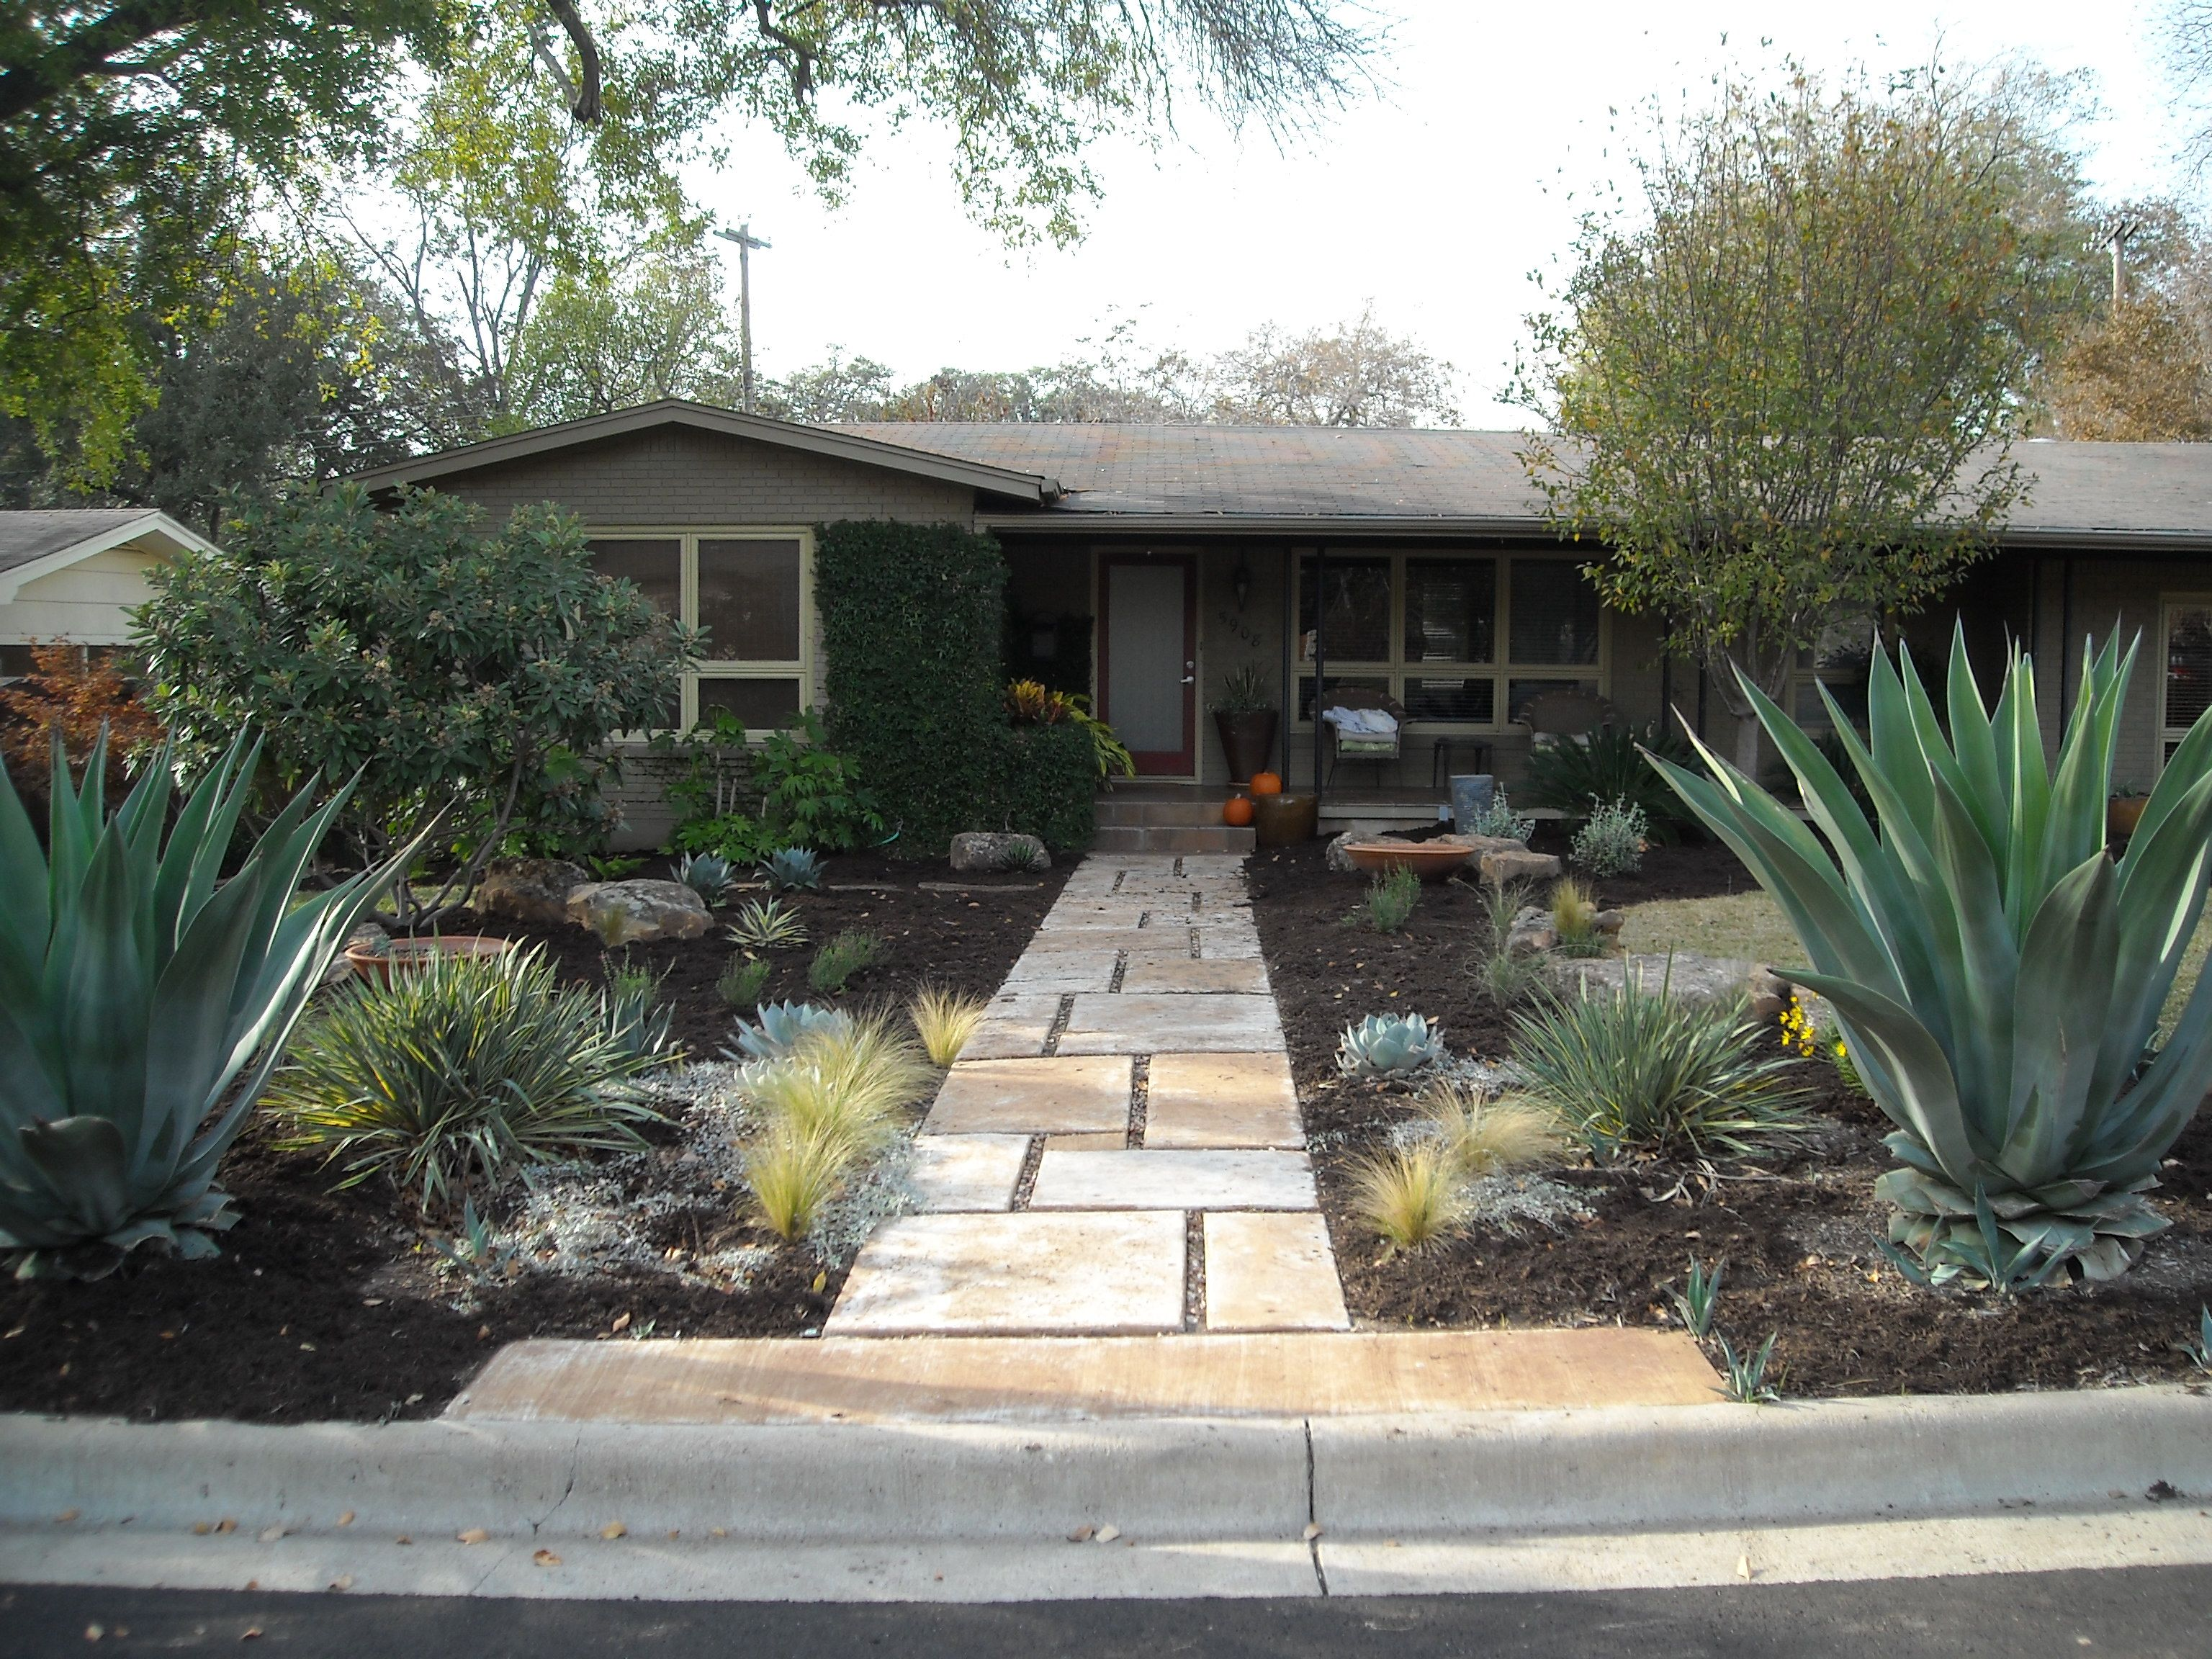 As you can see he had the base of a good landscape with his ... Ranch House Design Ideas Xeriscape on planting design ideas, drought tolerant design ideas, arid landscape design ideas, commercial design ideas, tree design ideas, concrete design ideas, education design ideas, fire pits design ideas, gravel design ideas, stone design ideas, diy design ideas, lawn design ideas, gardening design ideas, texas design ideas, family design ideas, cactus design ideas, dryscape ideas, xeriscaping ideas, formal design ideas, winter design ideas,